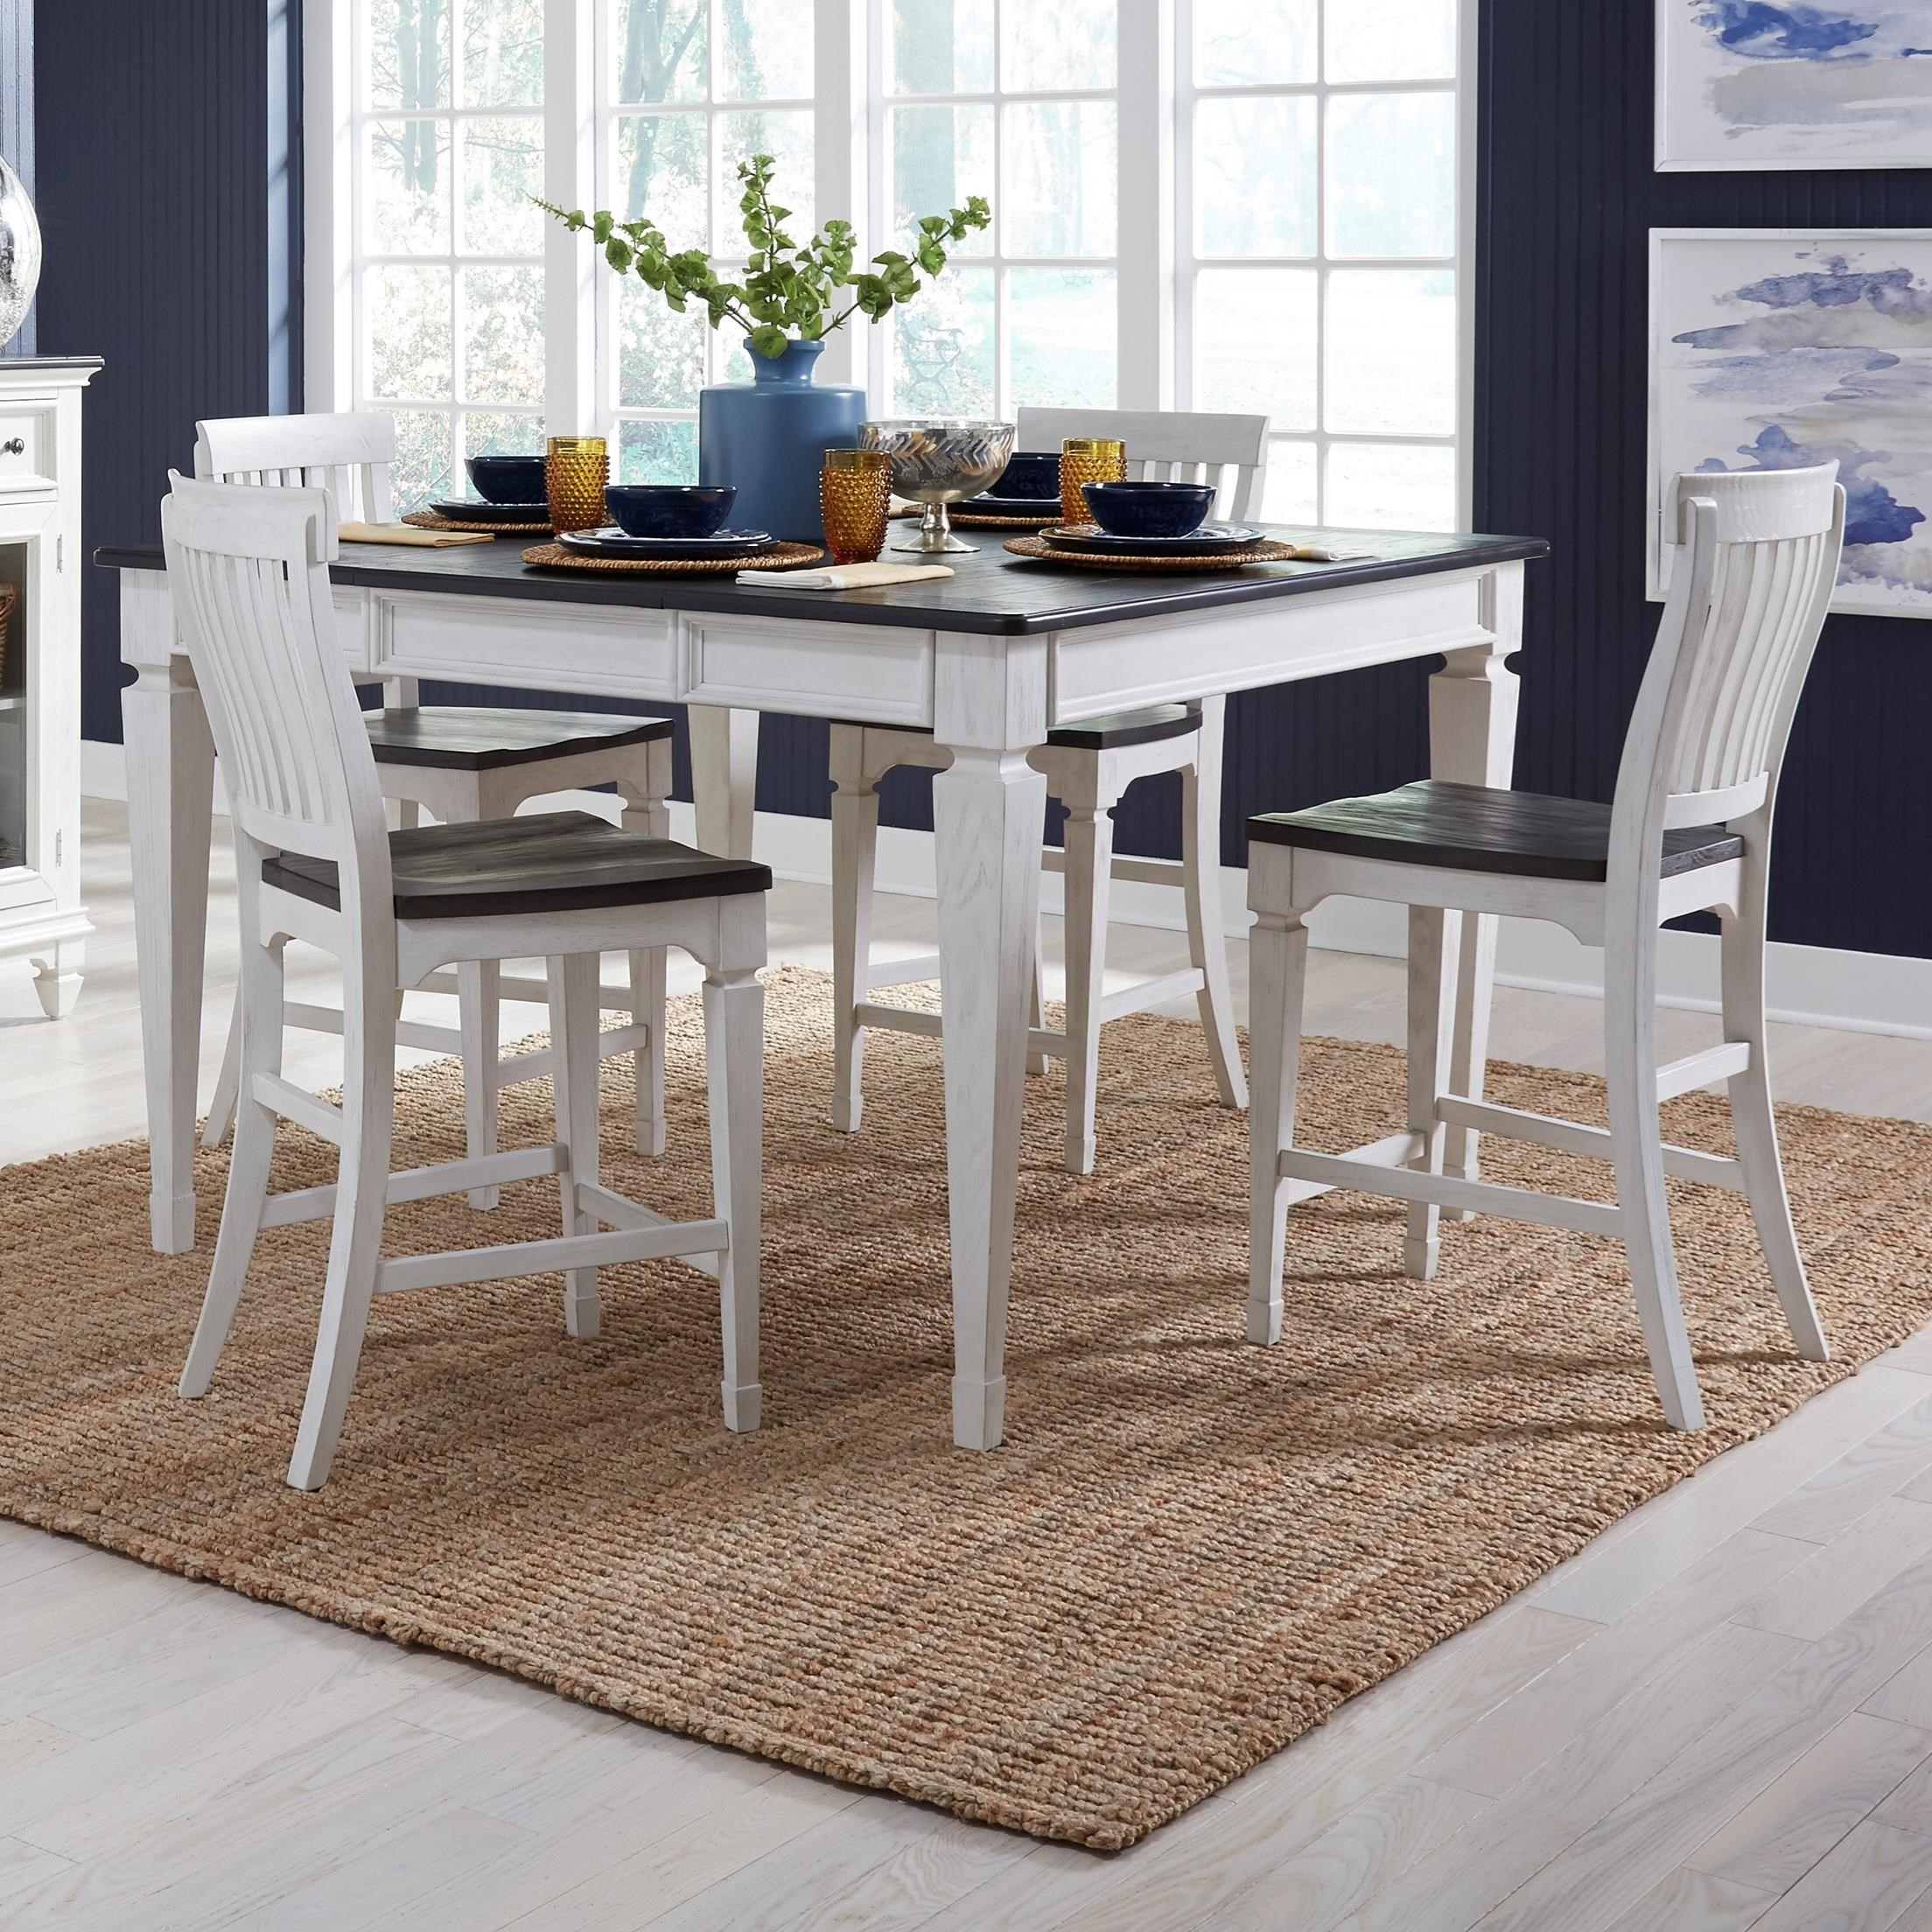 Allyson Park 5-Piece Gathering Table Set by Liberty Furniture at Home Collections Furniture